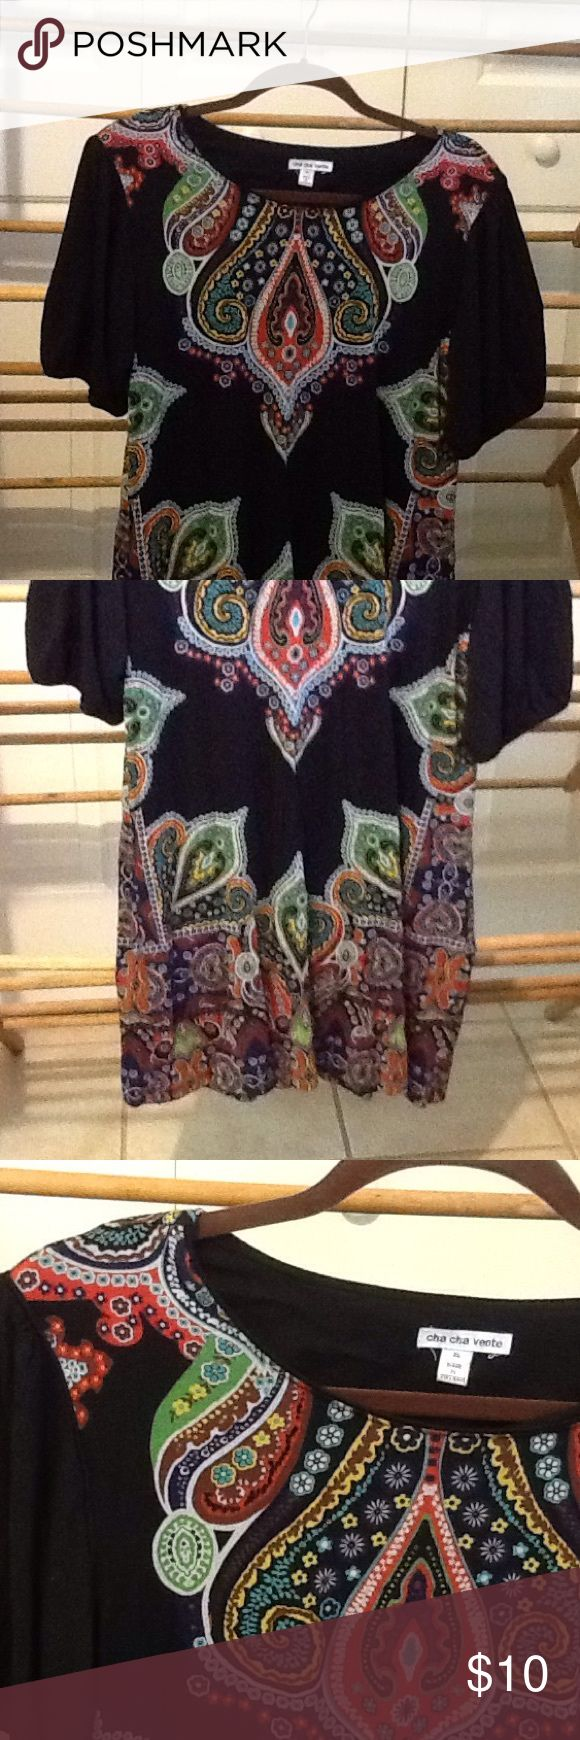 """Size XL Colorful Tunic Style Dress Black Festival Festival style size XL rayon and spandex tunic style dress. Black tribal boho design. 36"""" bust, 38"""" waist, 42"""" hips, 29"""" long. In very good condition. Cha Cha Vente  Dresses Mini"""